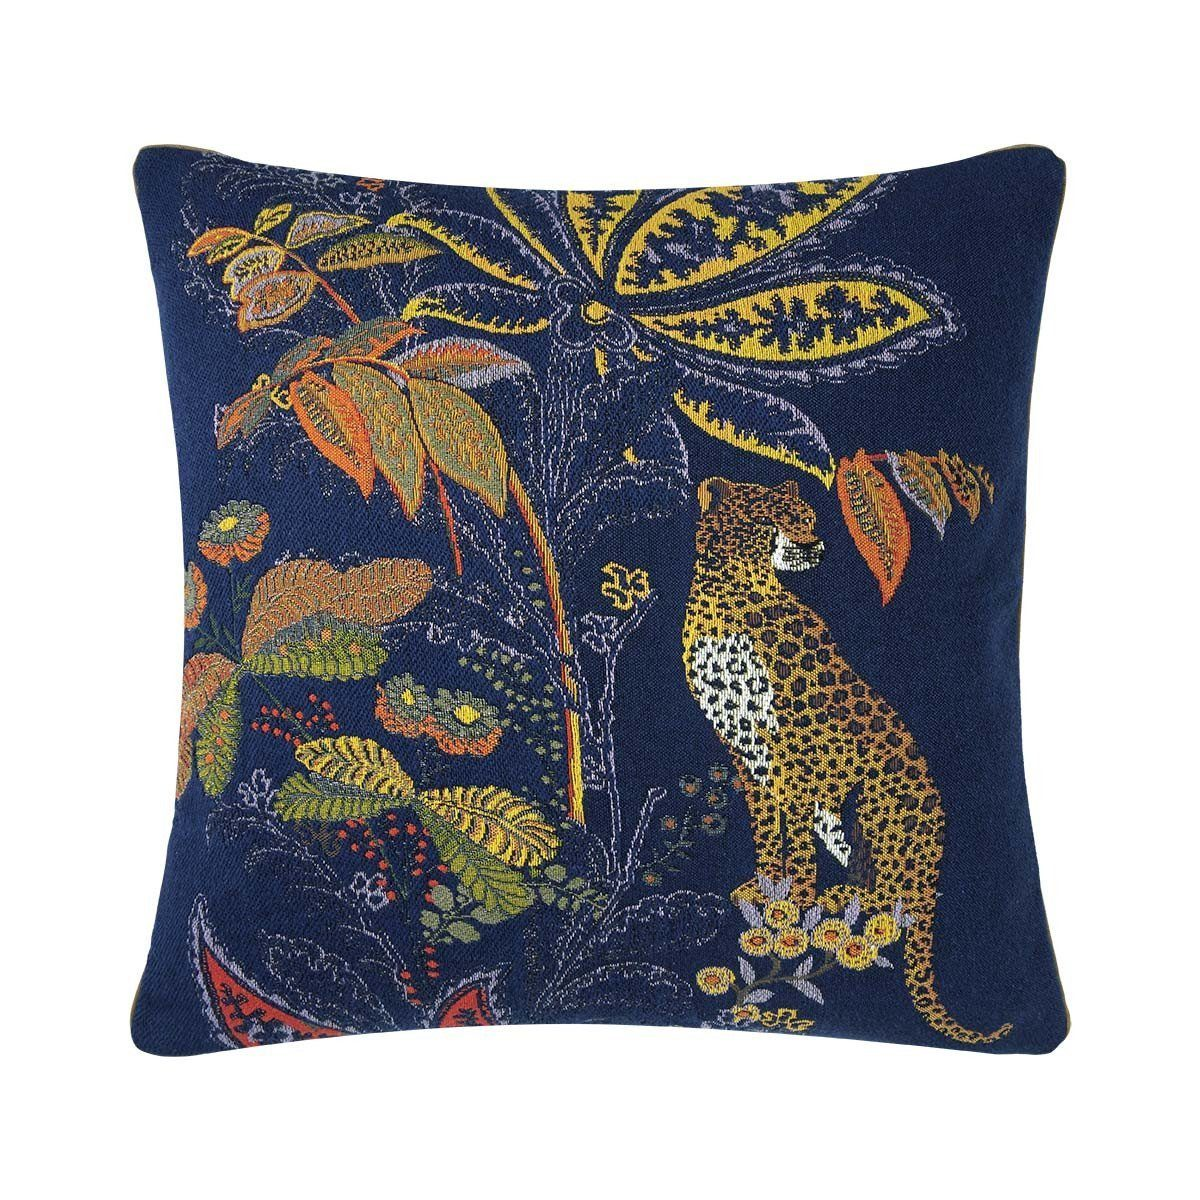 Indienne Nuit Decorative Pillow by Iosis